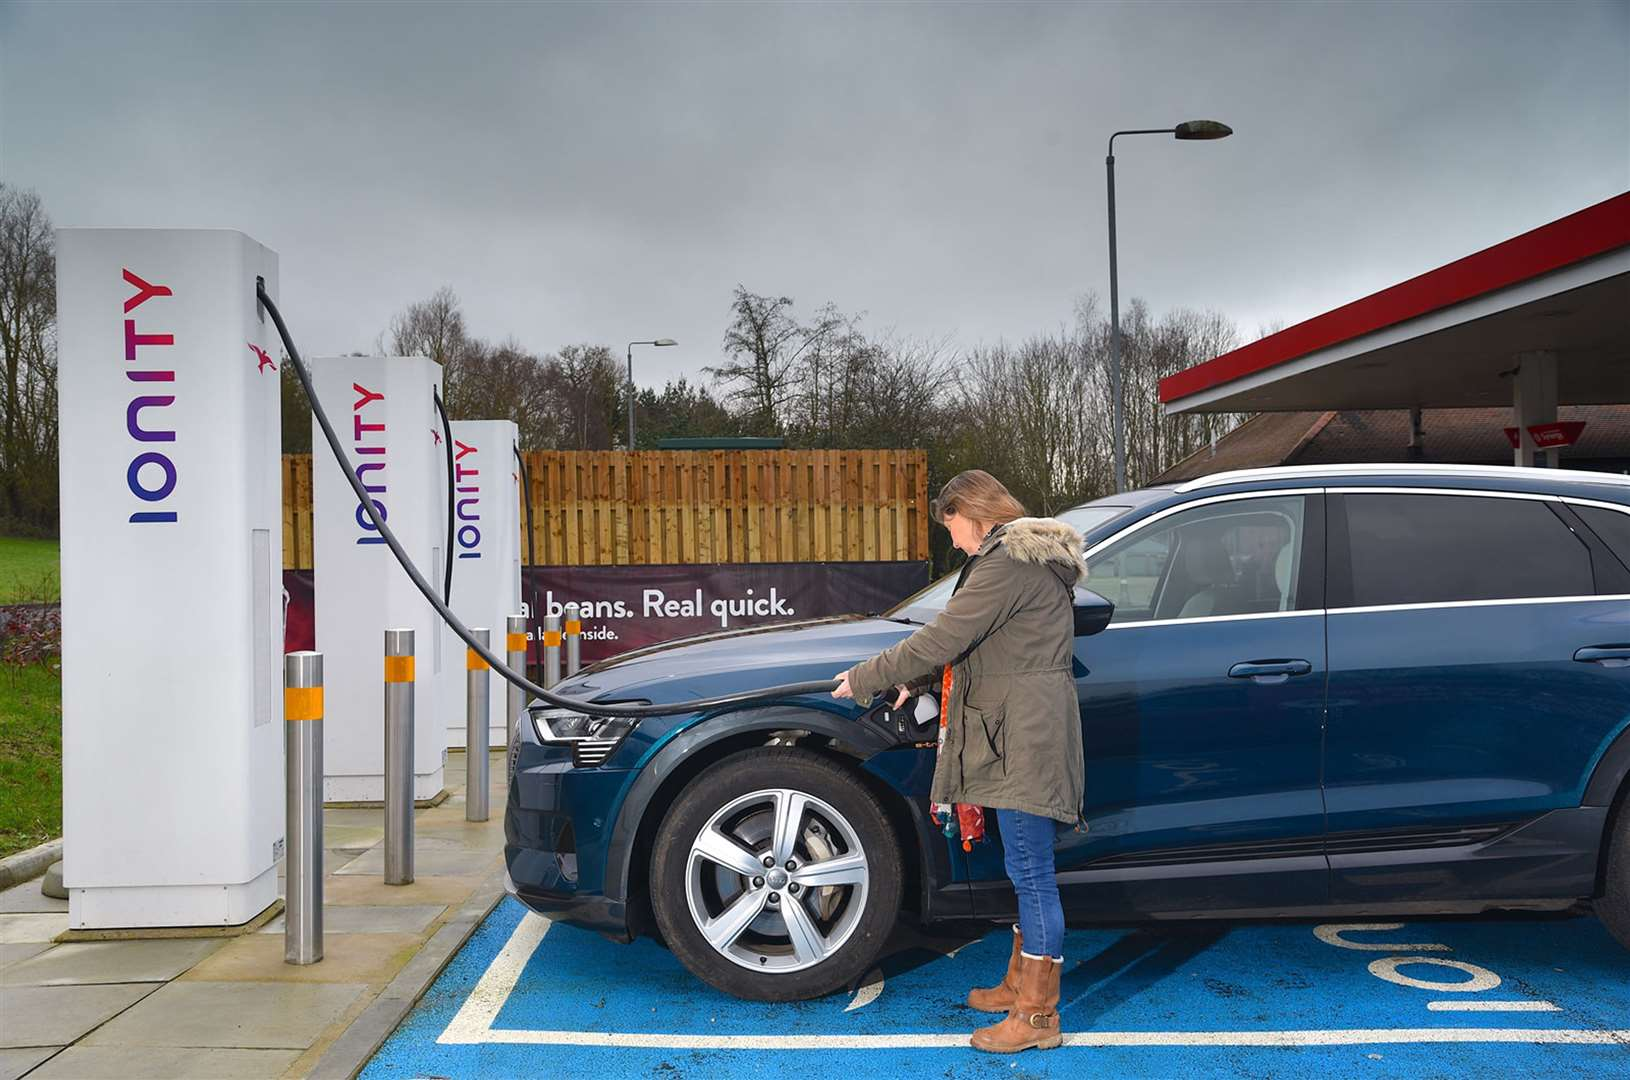 Interest in electric cars is growing says one lease company